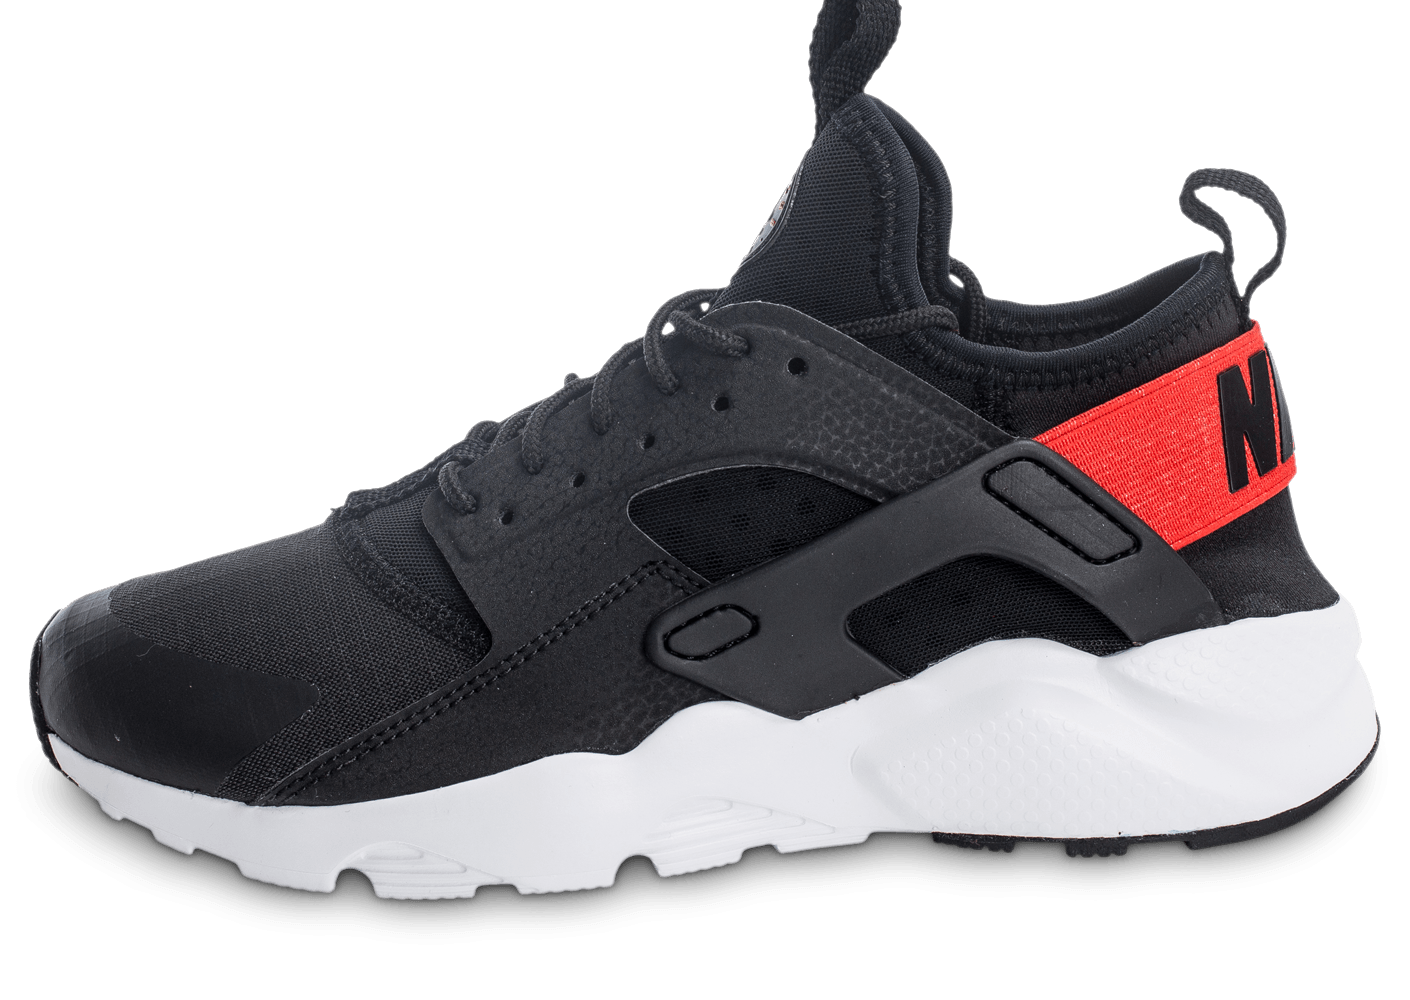 newest f9e9d cf834 Nike Air Huarache Run Ultra Junior noir et rouge - Chaussures Enfant -  Chausport